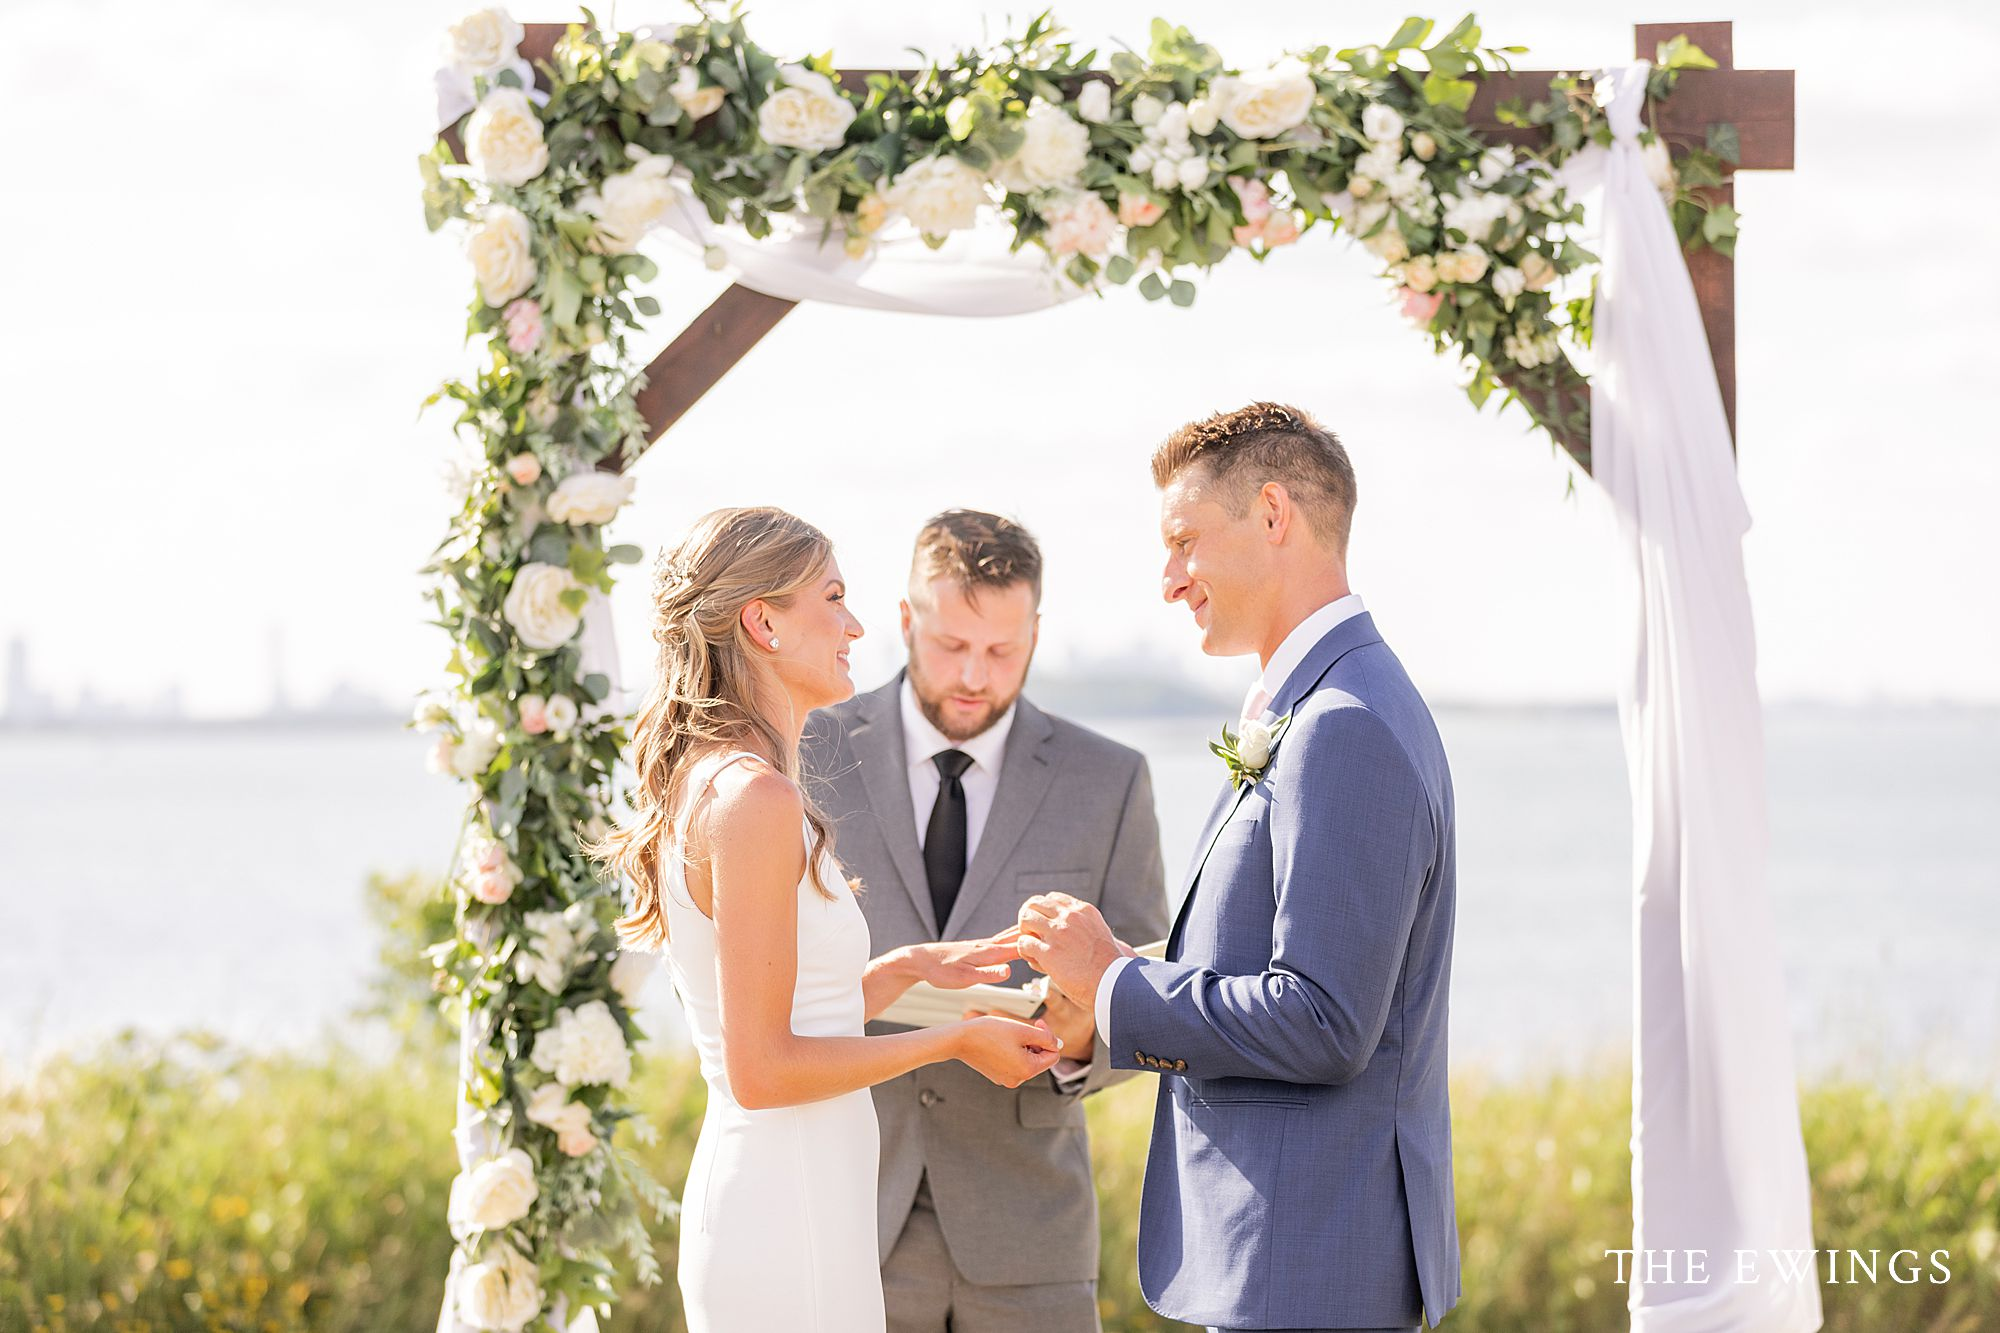 Who knew Quincy had such a gorgeous oceanfront wedding location for an intimate wedding?